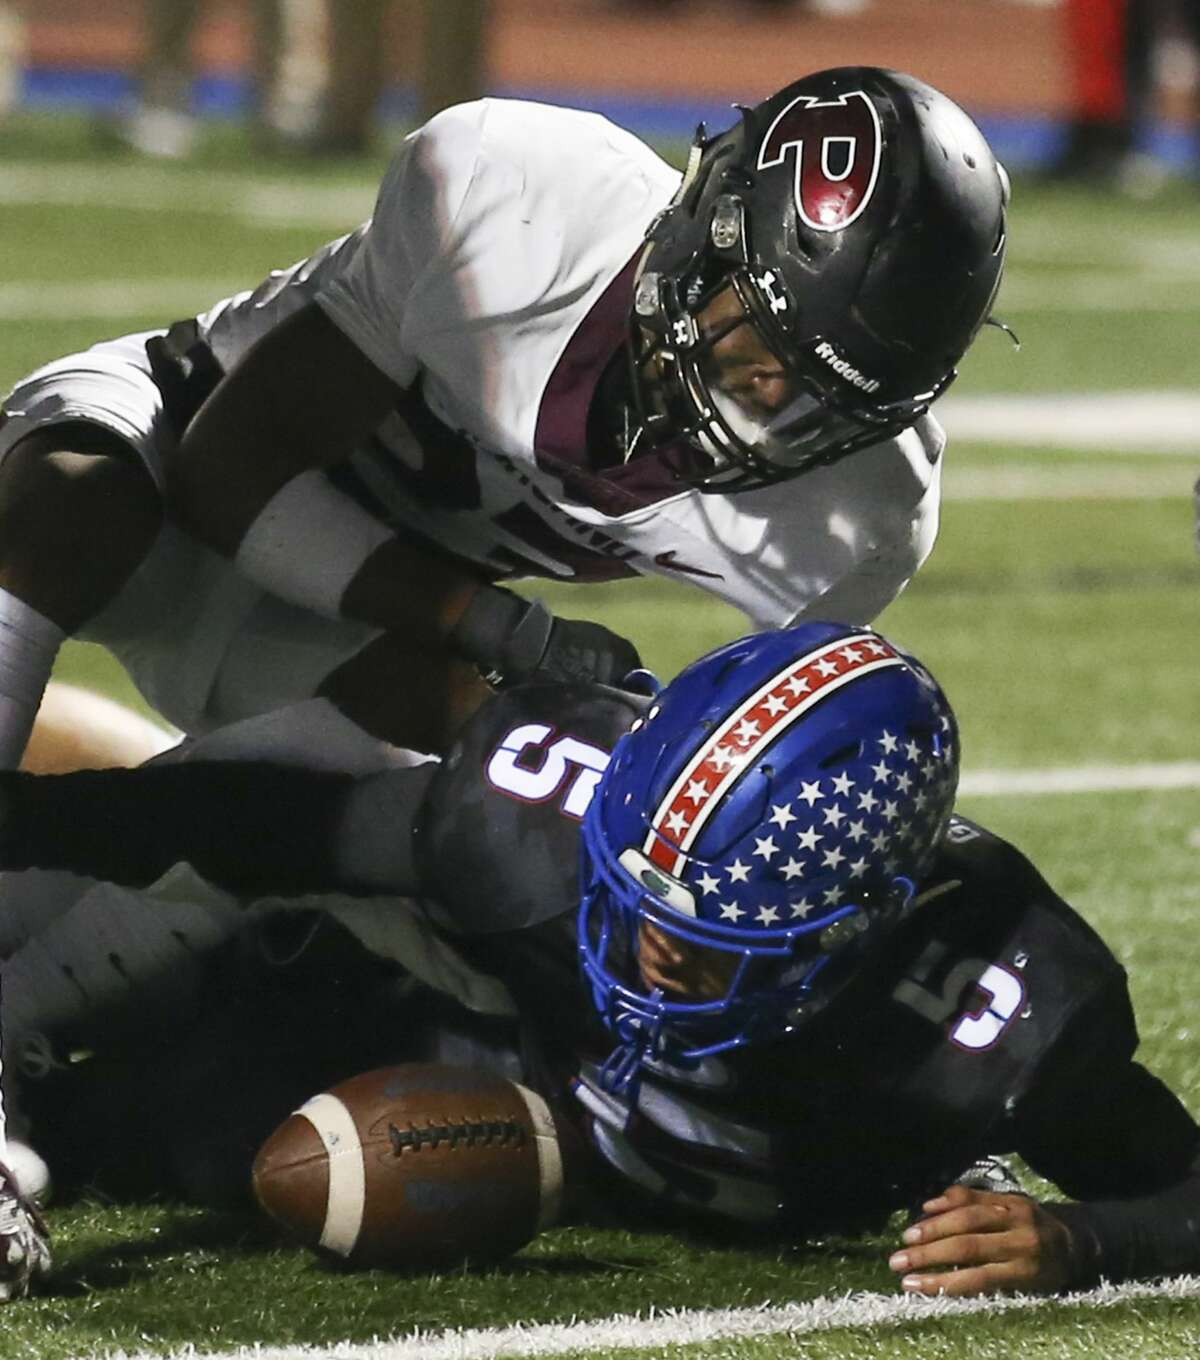 Colorado commit Dylan Dixon (top) is among the reasons Pearland is again considered the favorite to win District 23-6A.